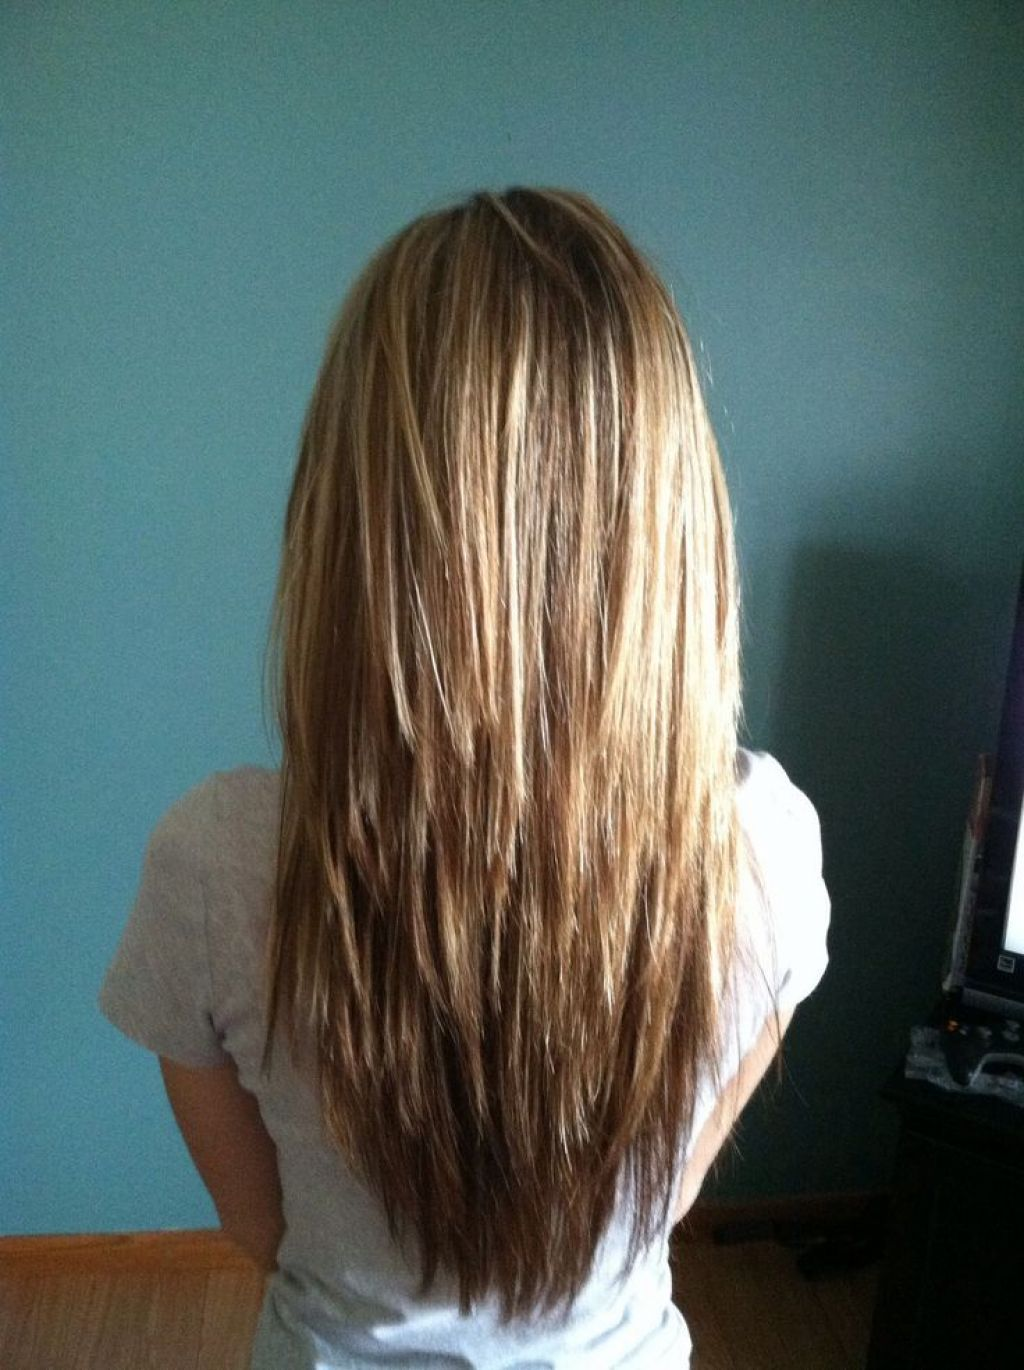 Long Hair Choppy Layers Hair Pinterest 2017 | Hair styles ...